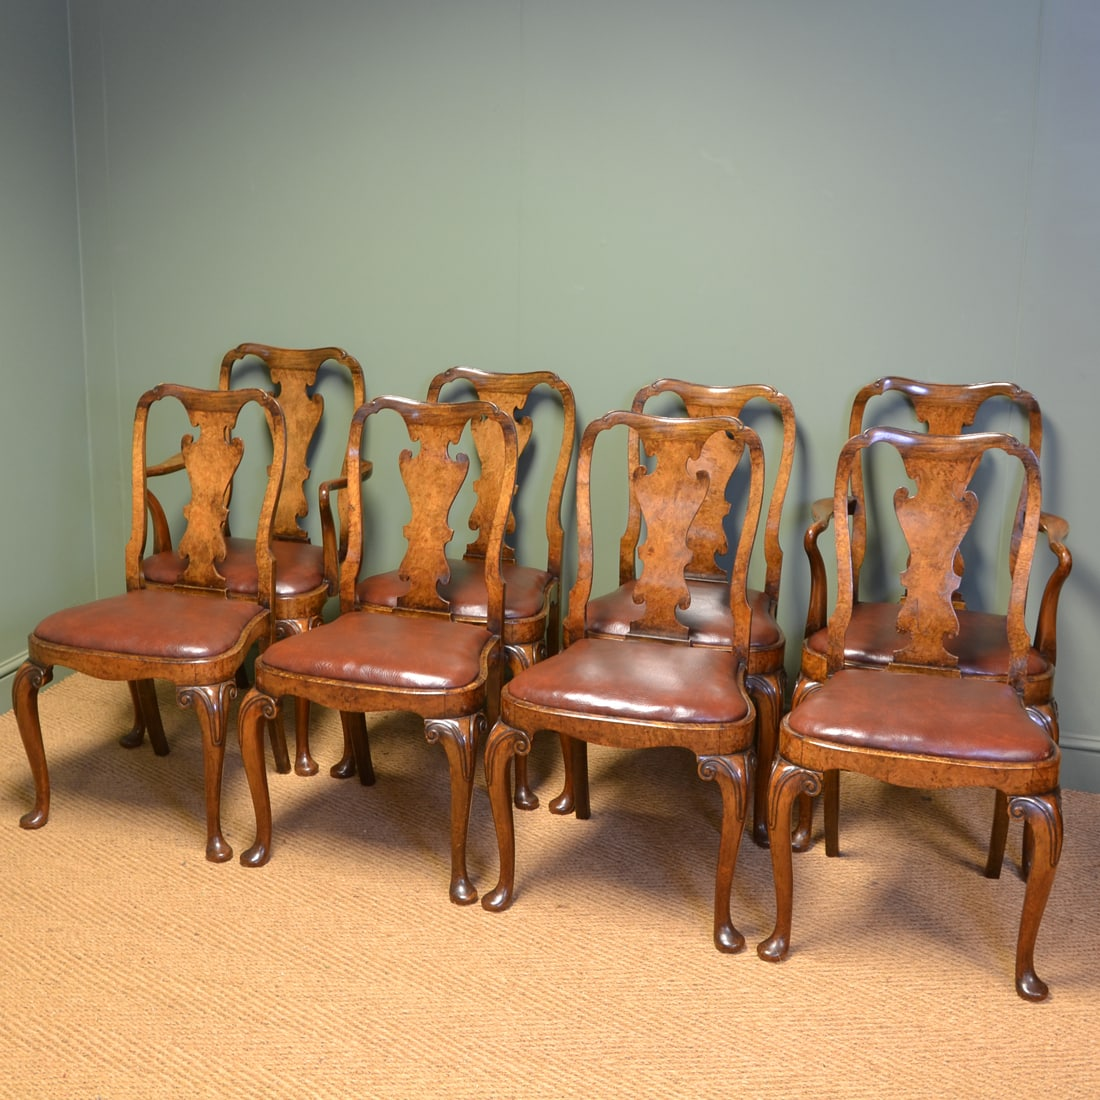 chair design antique hitchcock company edwardian chairs antiques world fine set of eight walnut queen anne dining